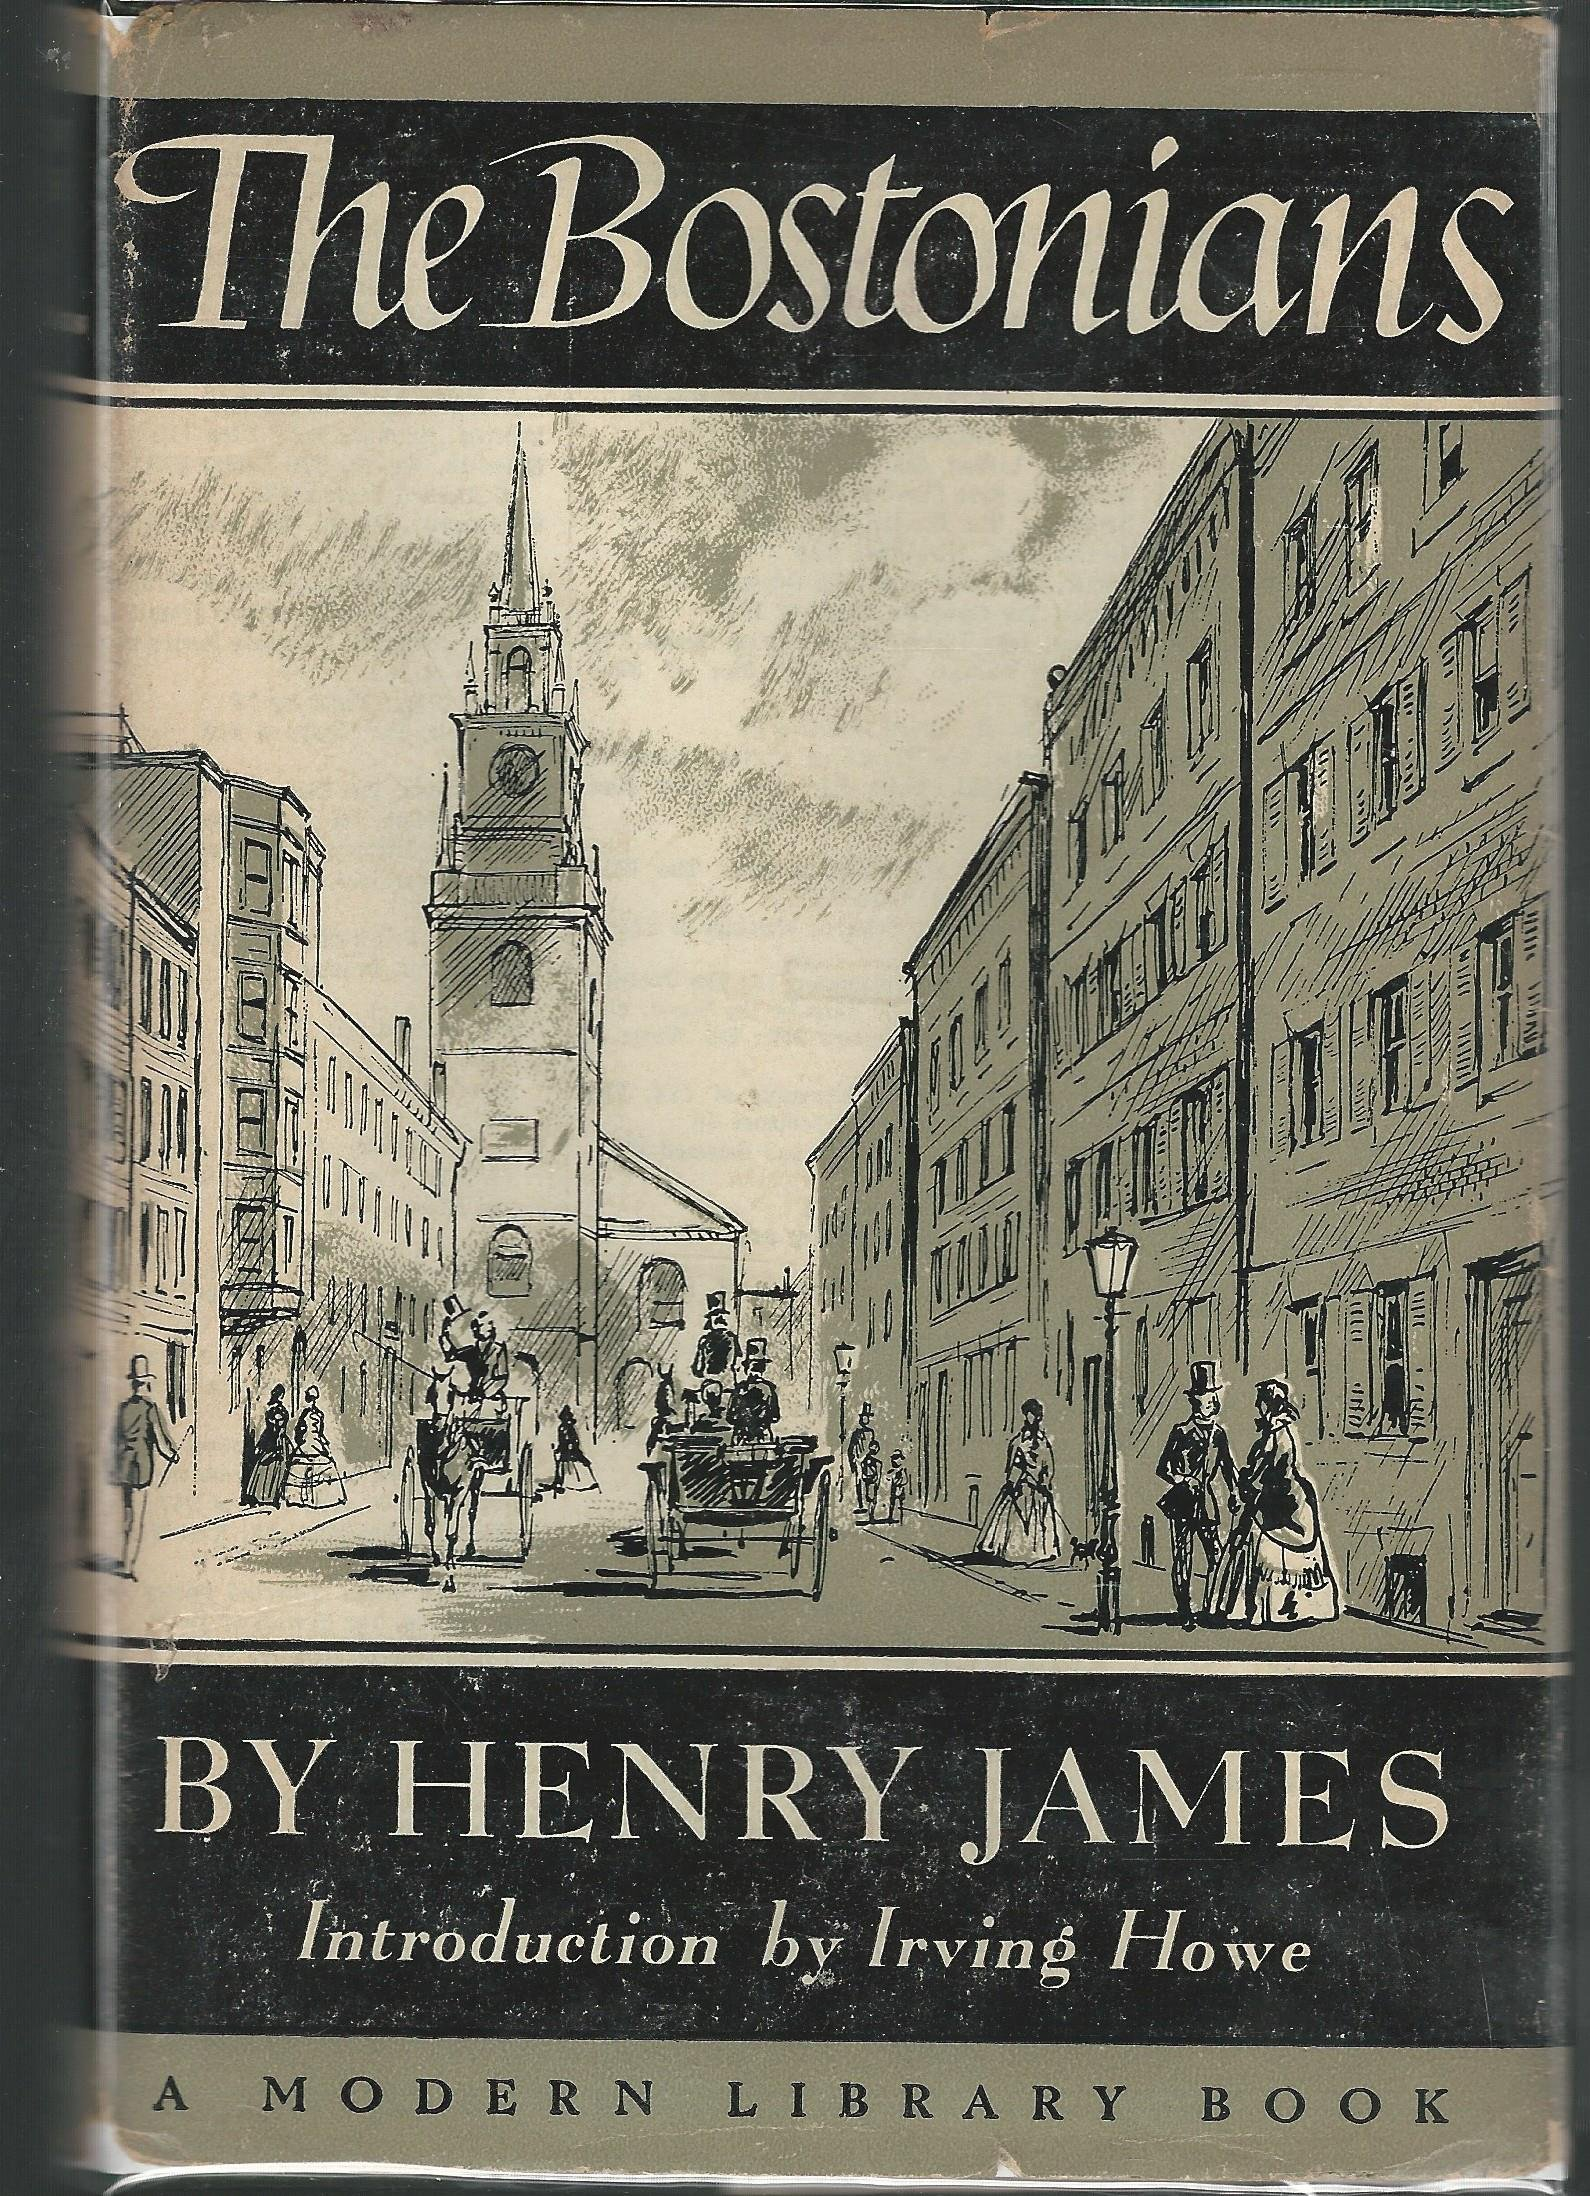 The Bostonians: A Novel (The Modern Library): Henry James: Amazon.com: Books